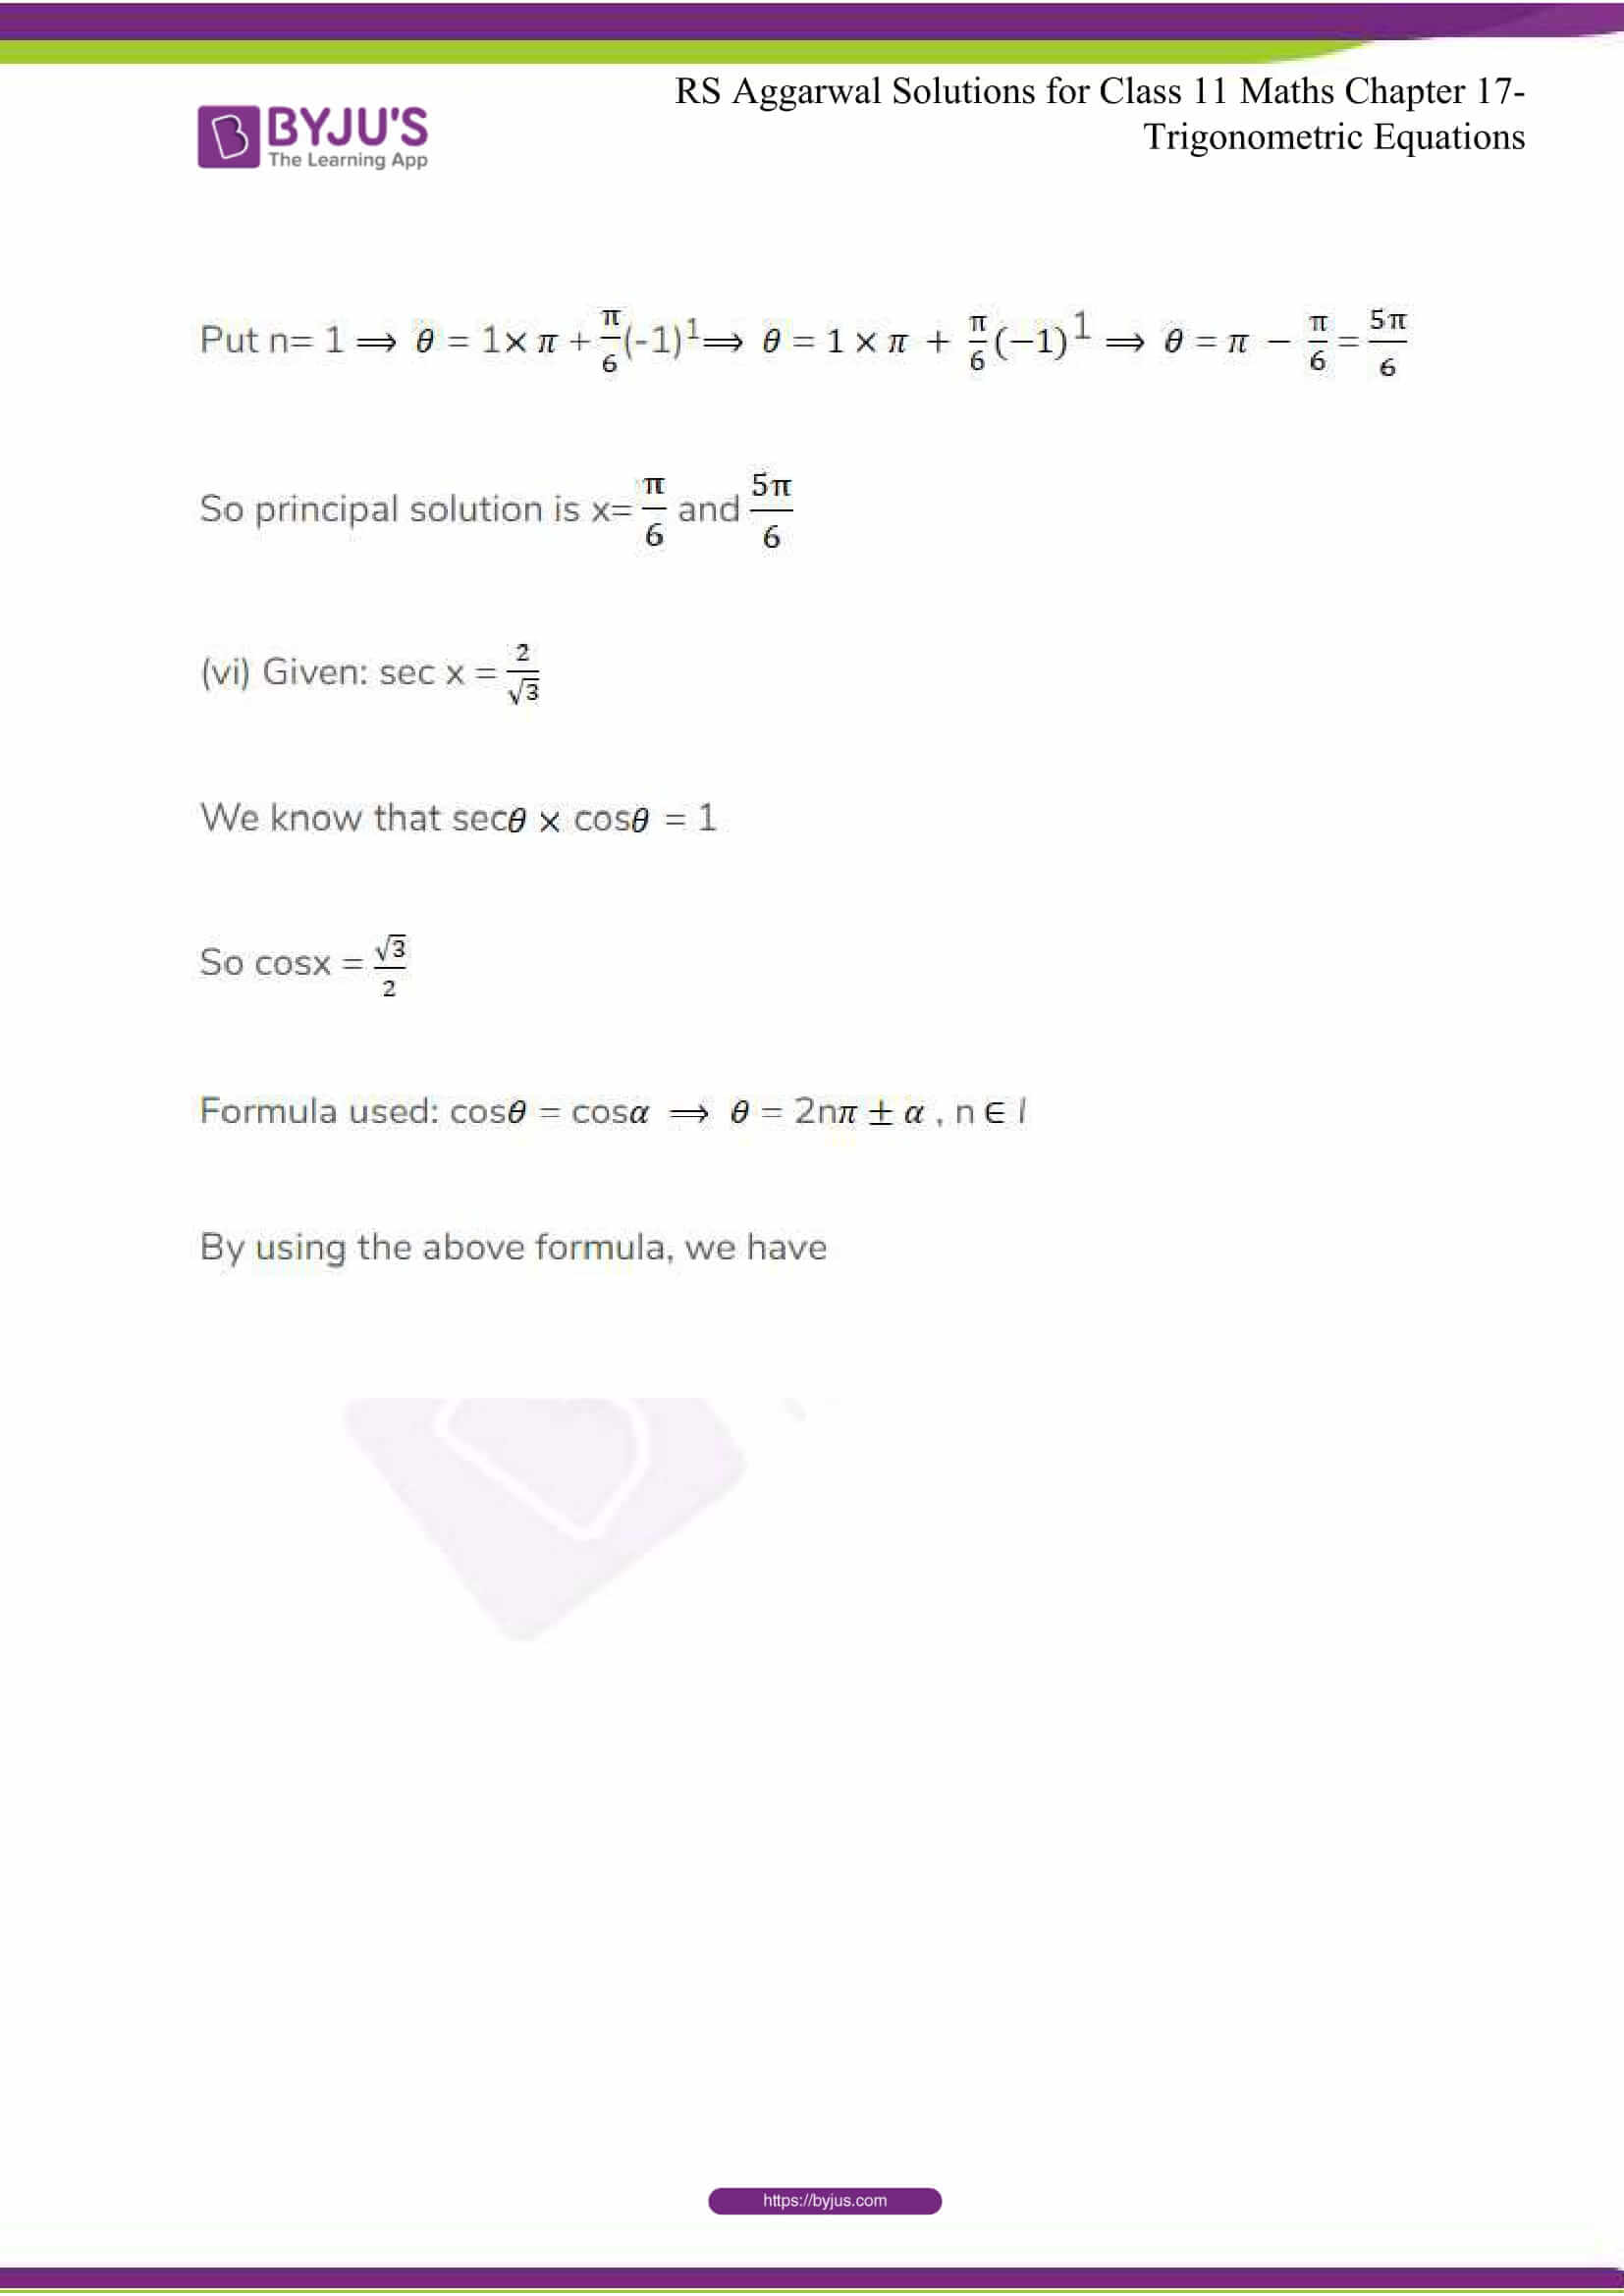 rsaggarwal solutions class 11 maths chapter 17 06